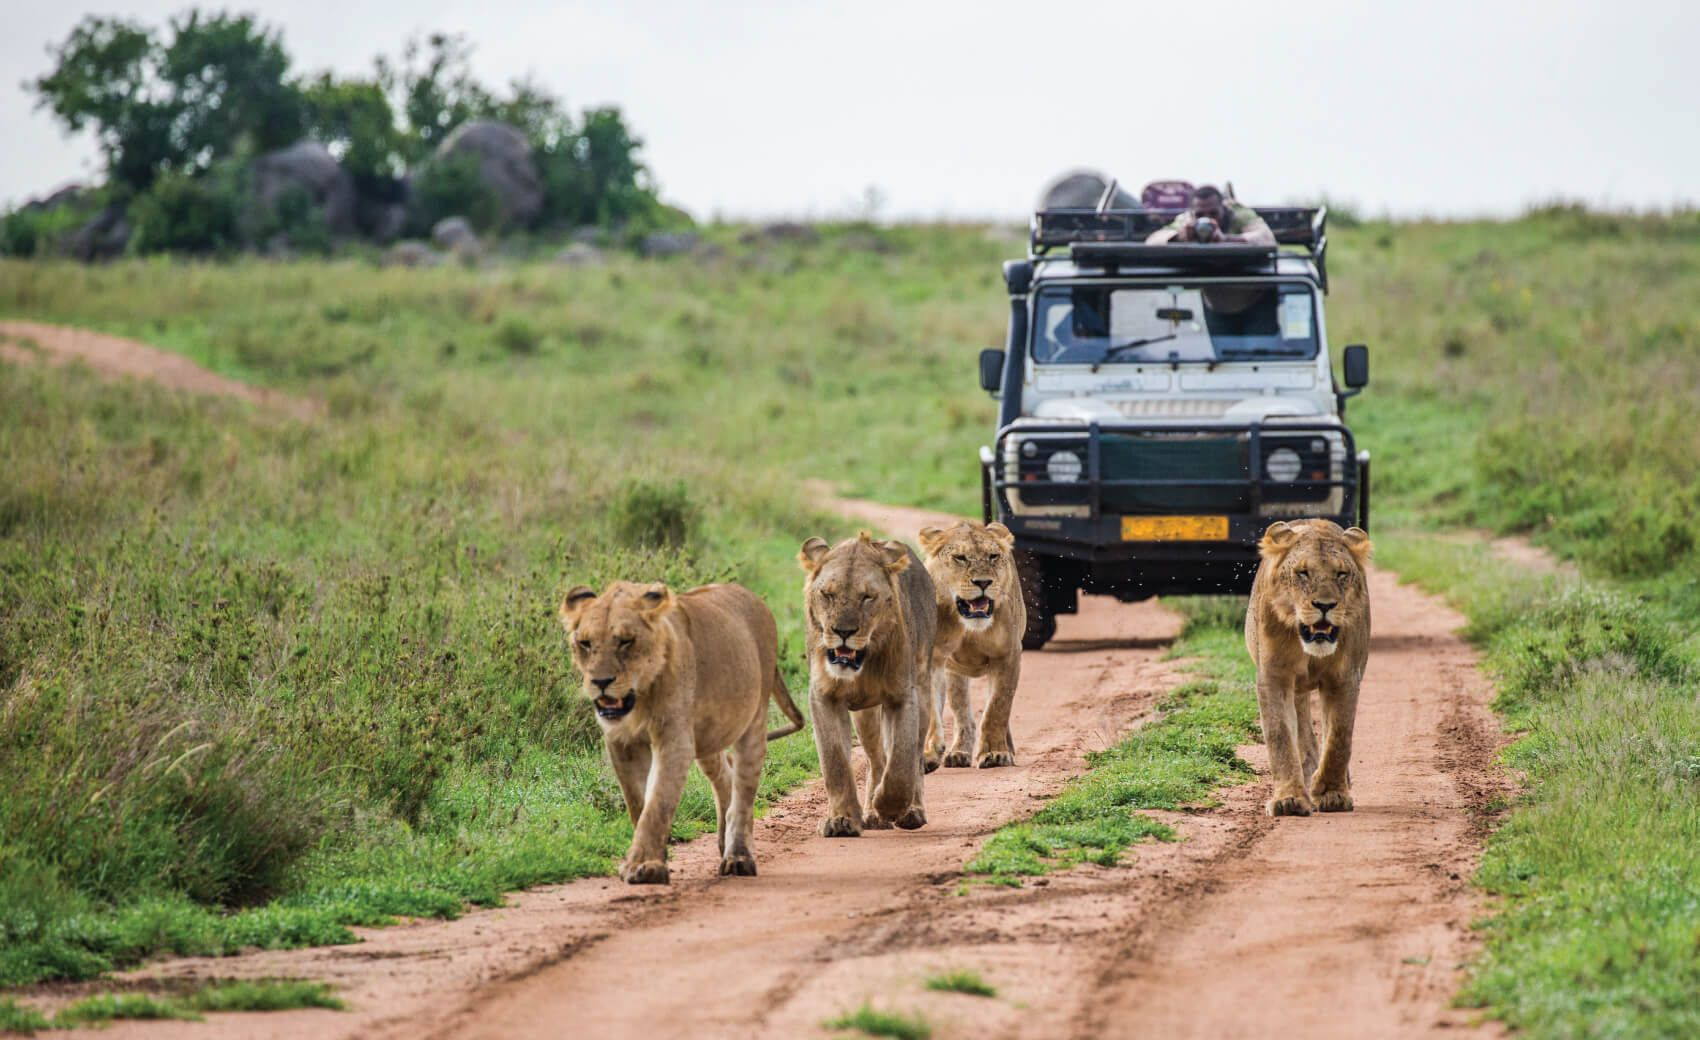 Lionesses walk along the road against the backdrop of a car with tourists- Masai Mara